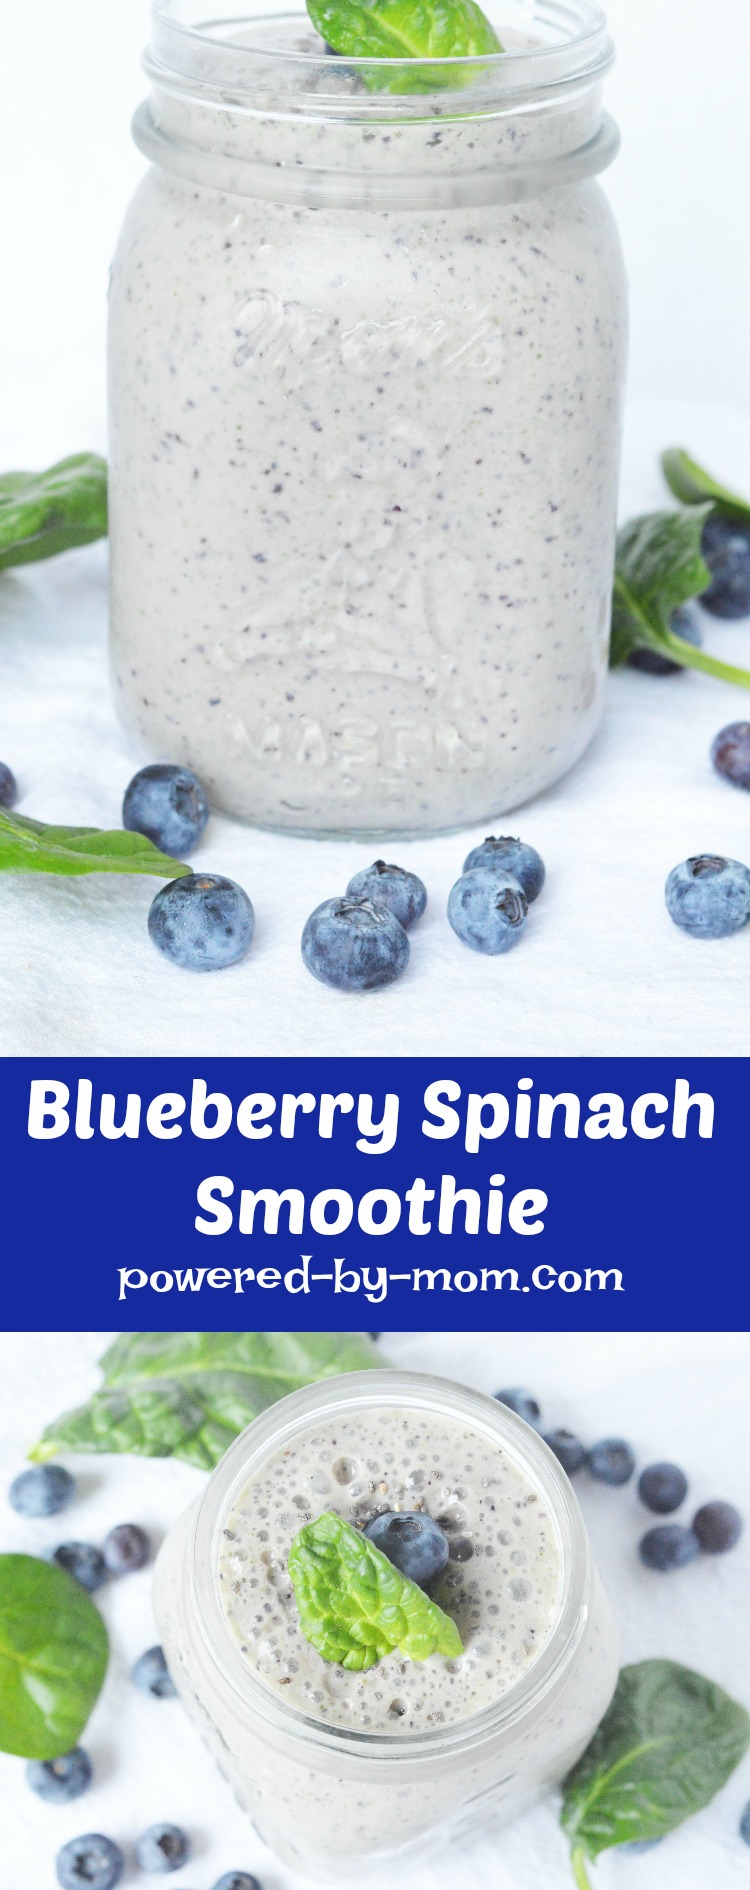 Blueberry Spinach Smoothie oh so yummy you forget it's healthy